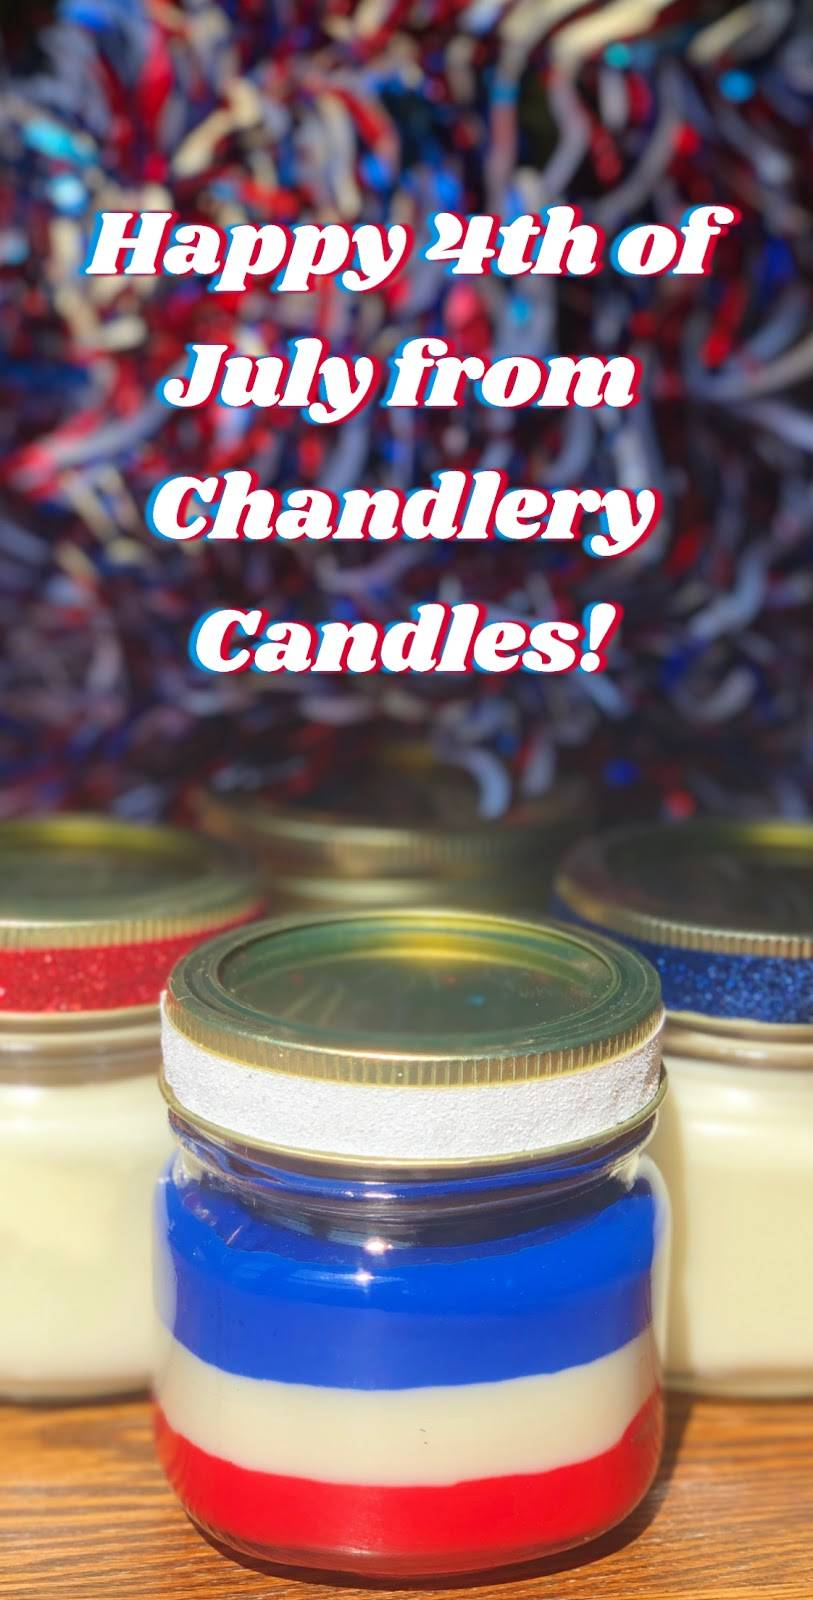 Chandlery Candles - home goods store  | Photo 9 of 9 | Address: 650 Maryland Ave W, St Paul, MN 55117, USA | Phone: (253) 293-0290